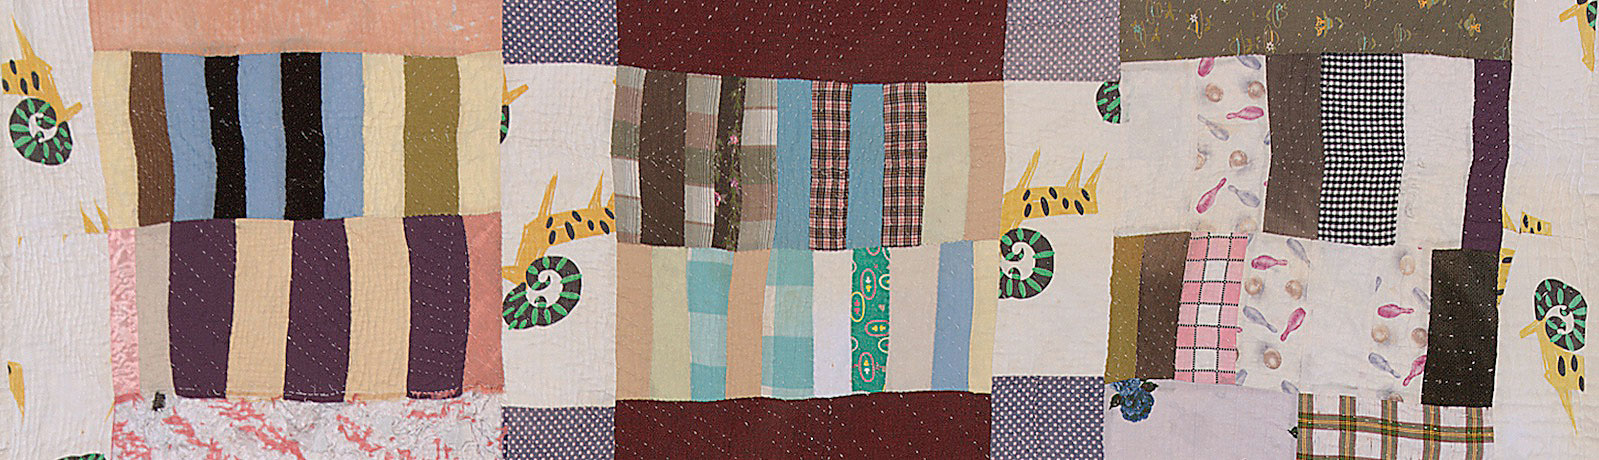 From a remote community in rural Alabama comes a remarkable African American quilting tradition renowned for free-spirited patterning.